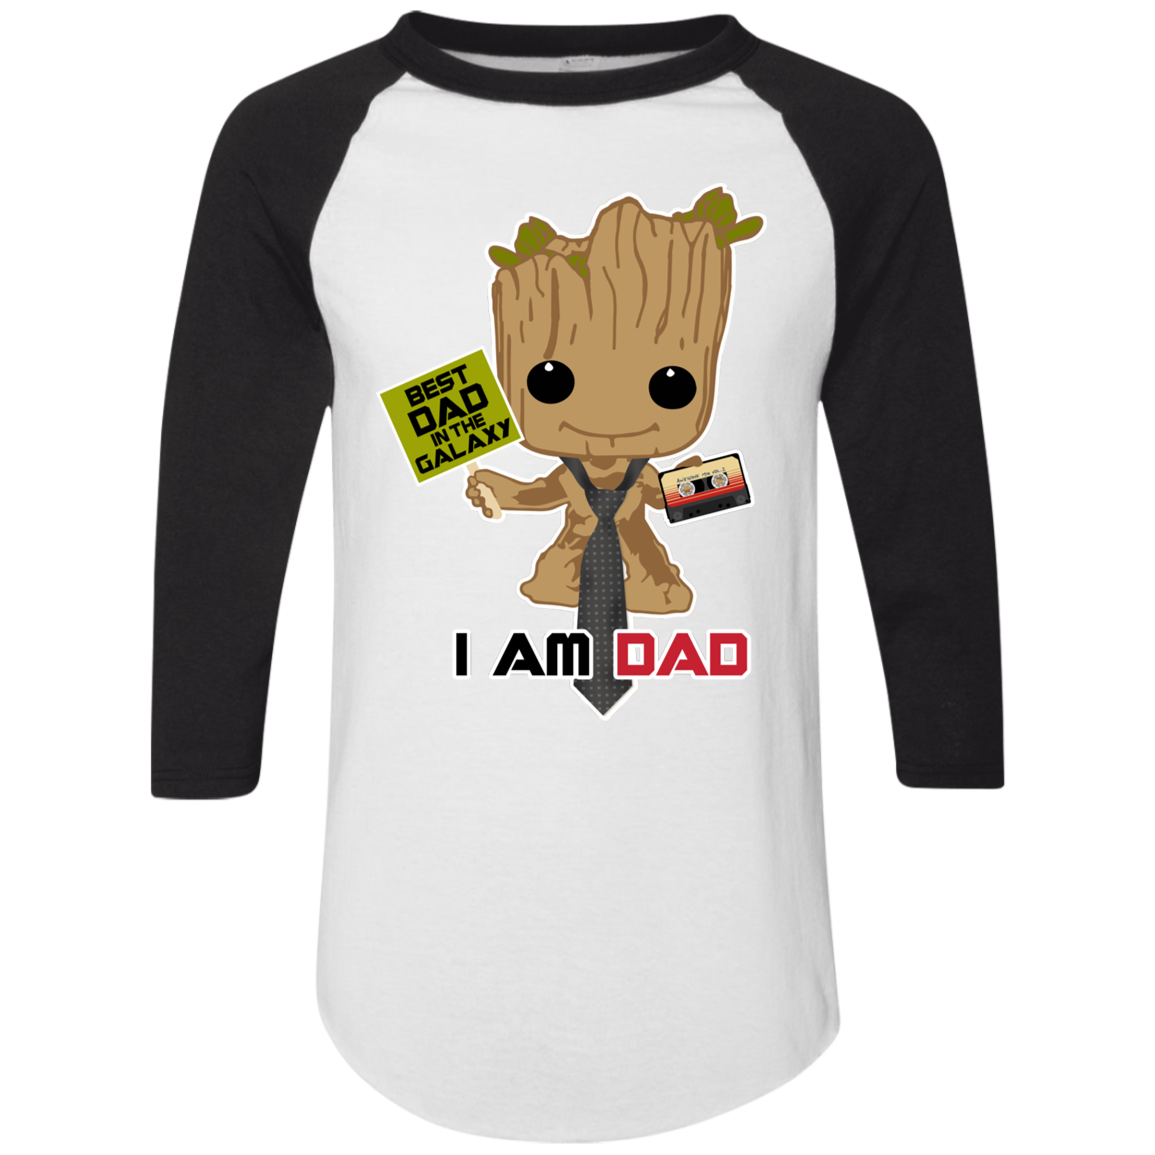 I Am Dad - Raglan Jersey